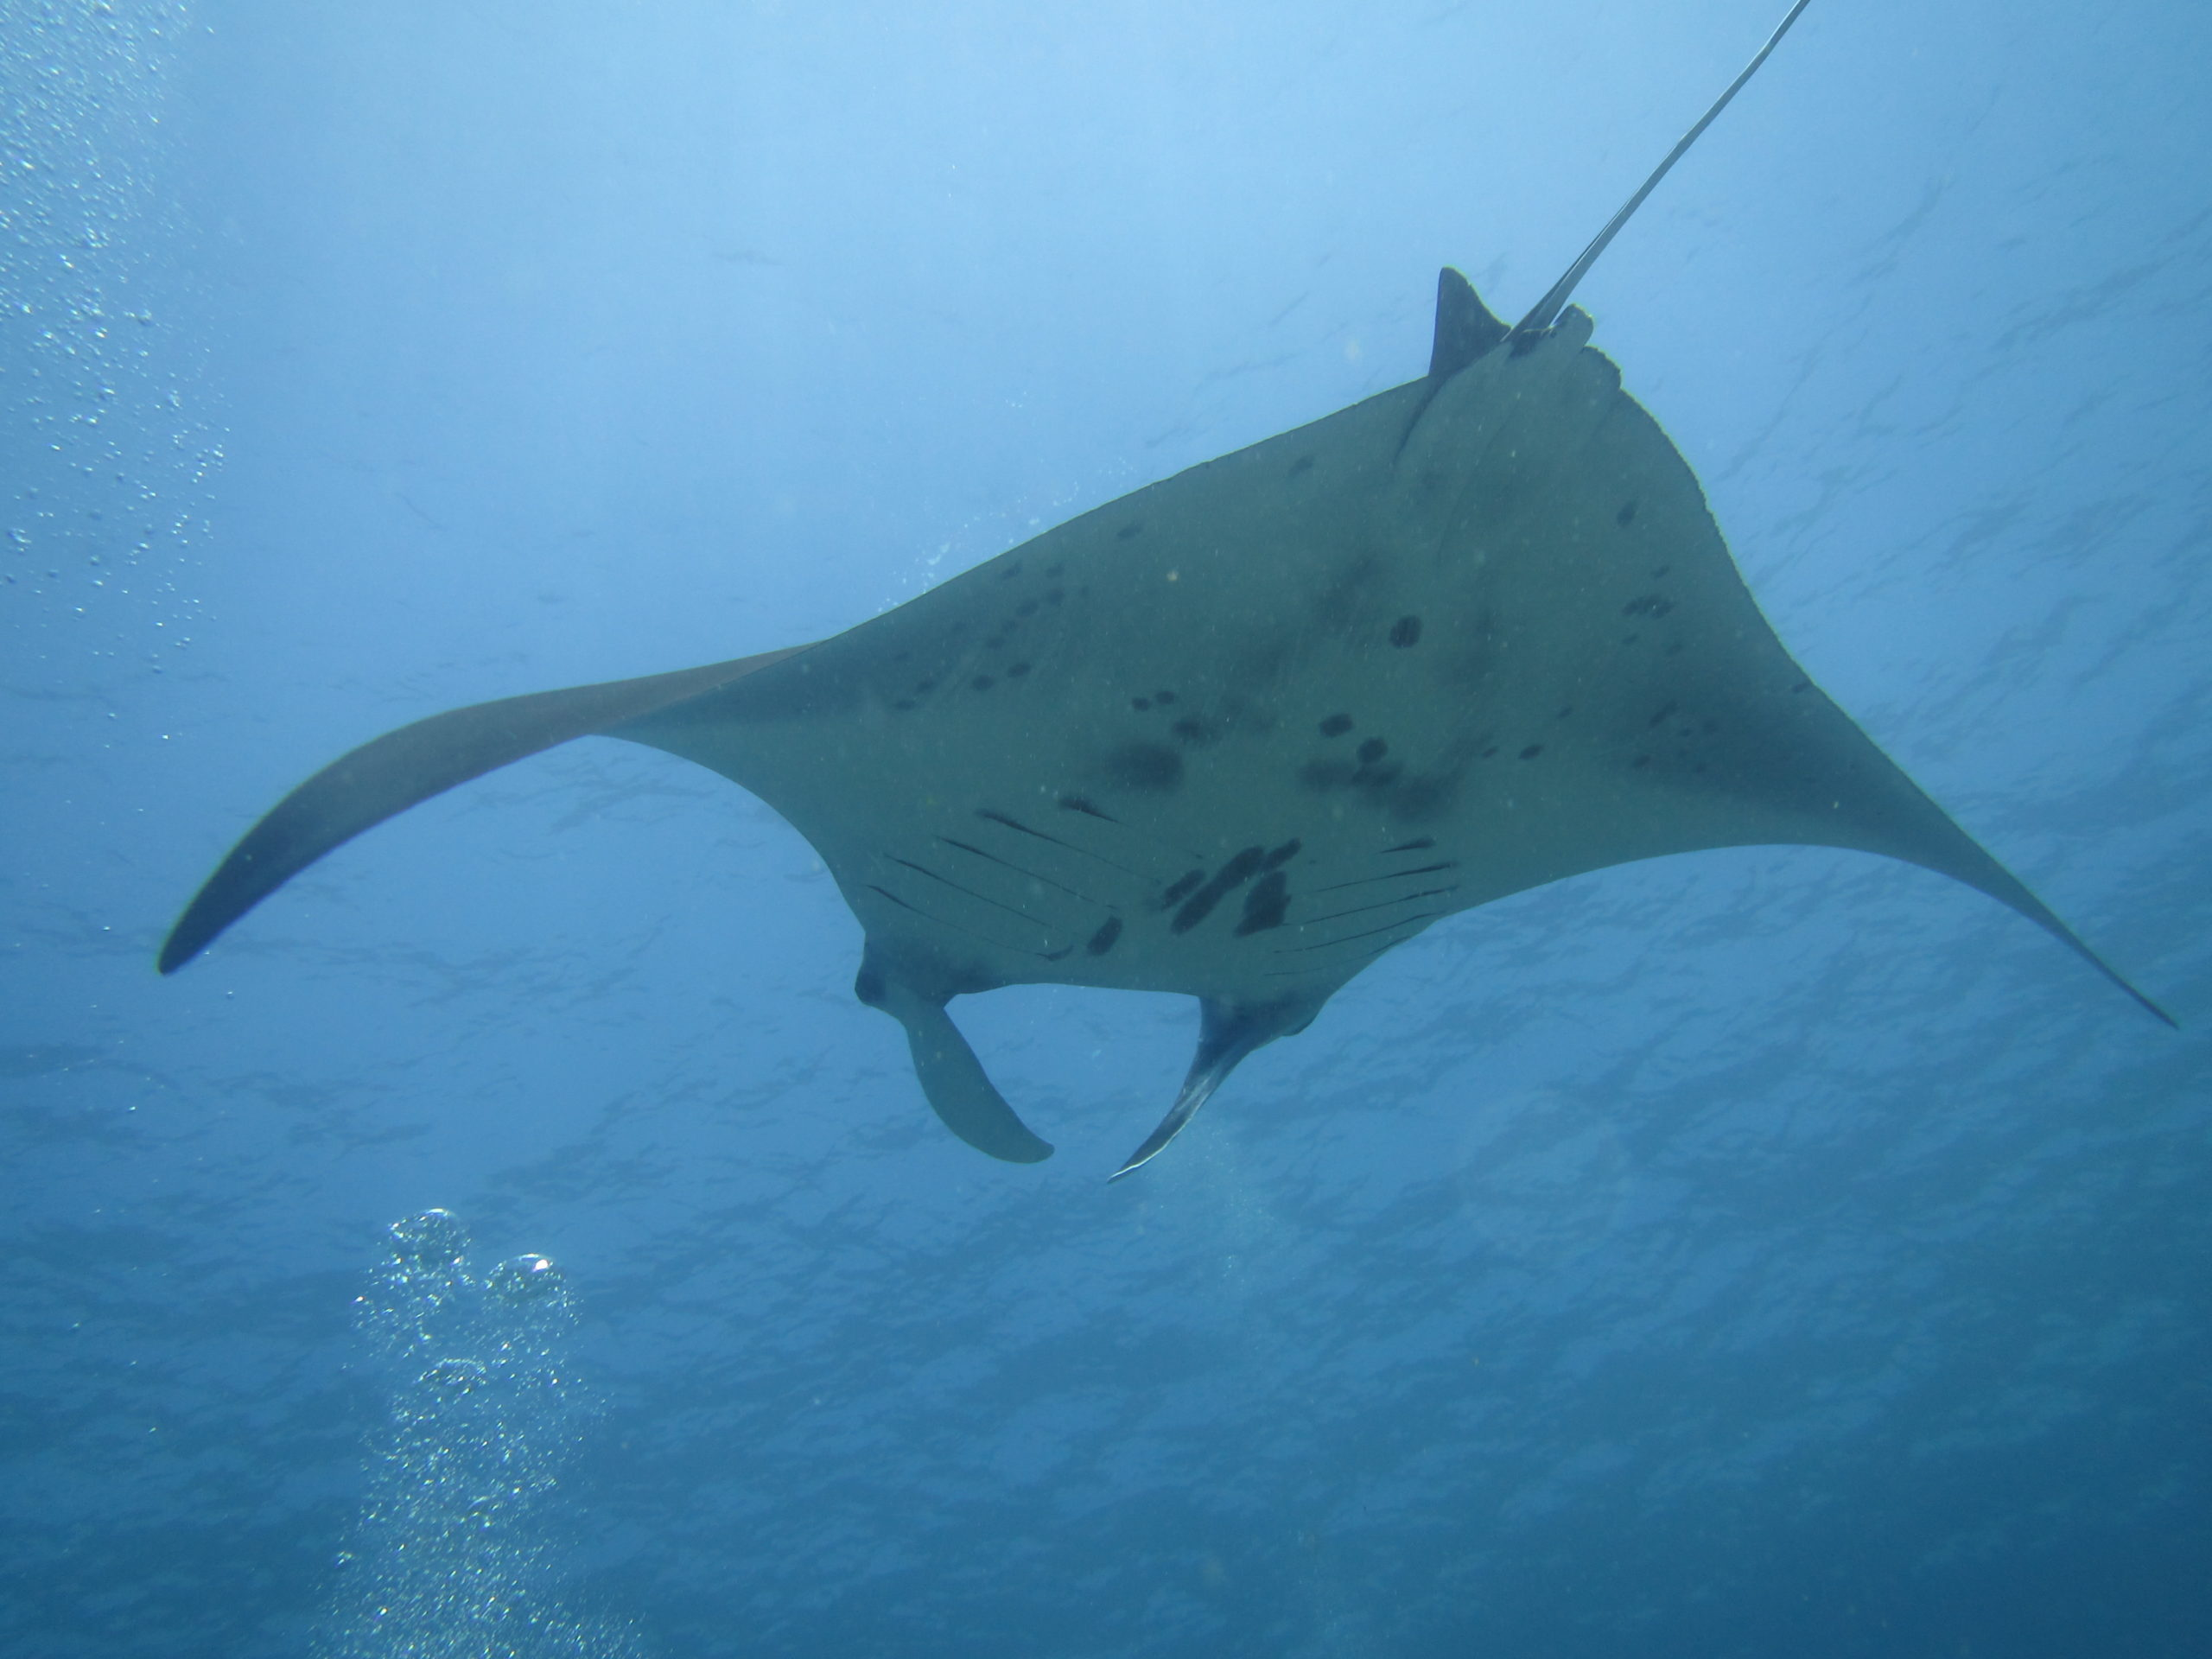 Come and dive with manta rays in Komodo National Park. In Komodo, you can see mantas all year round so you will have a high chance to dive with them any time of year that you visit